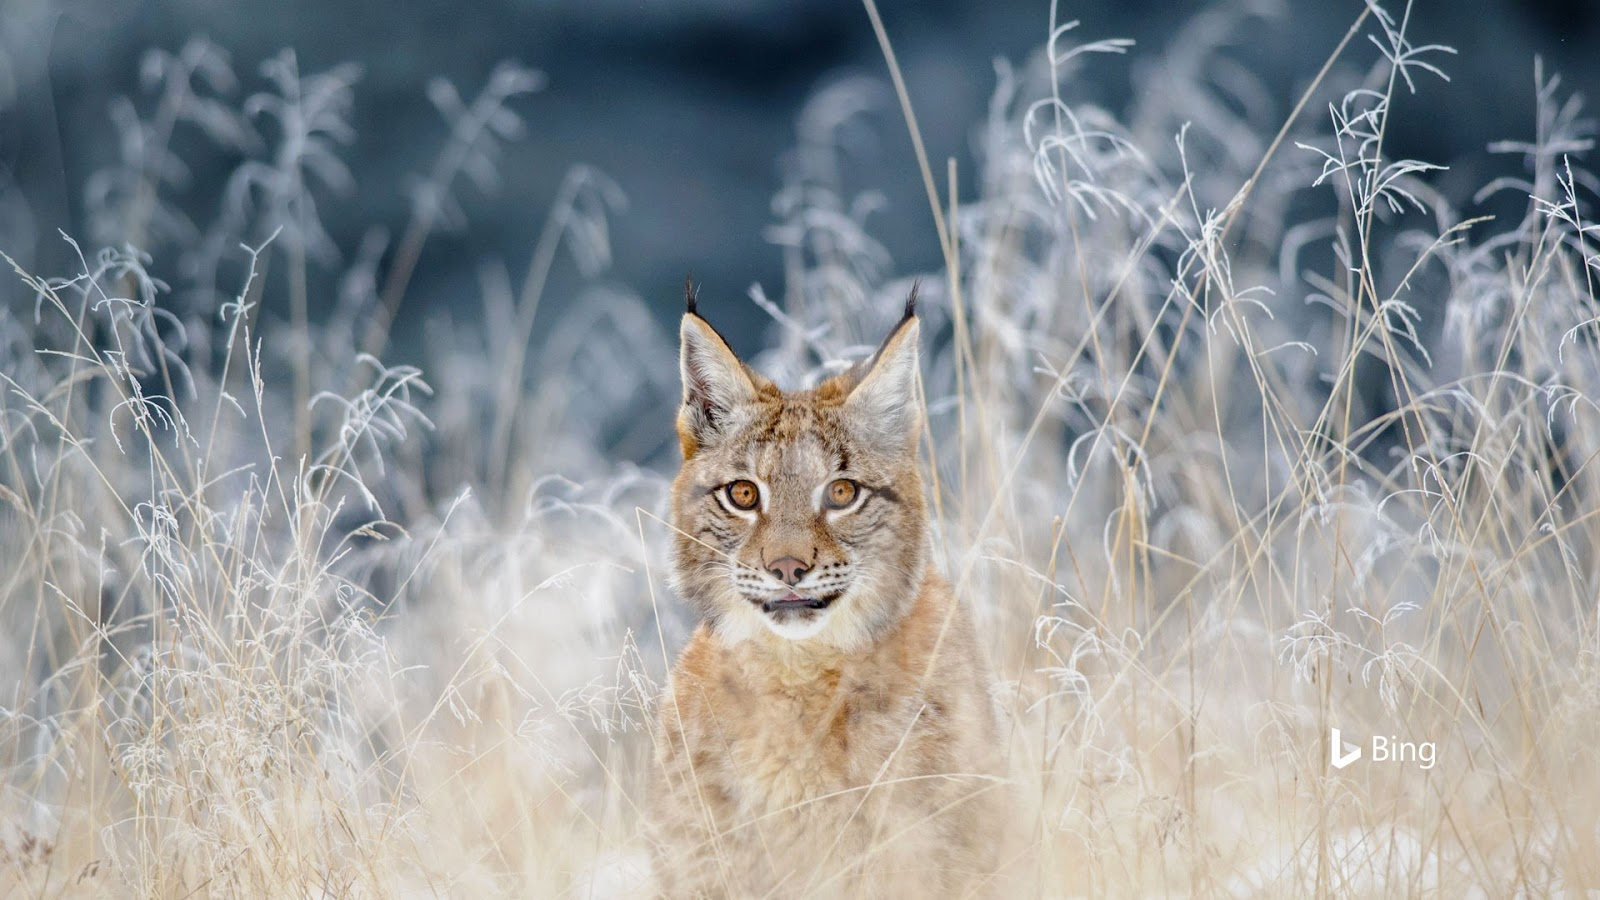 Eurasian lynx in the Bohemian-Moravian Highlands of the Czech Republic